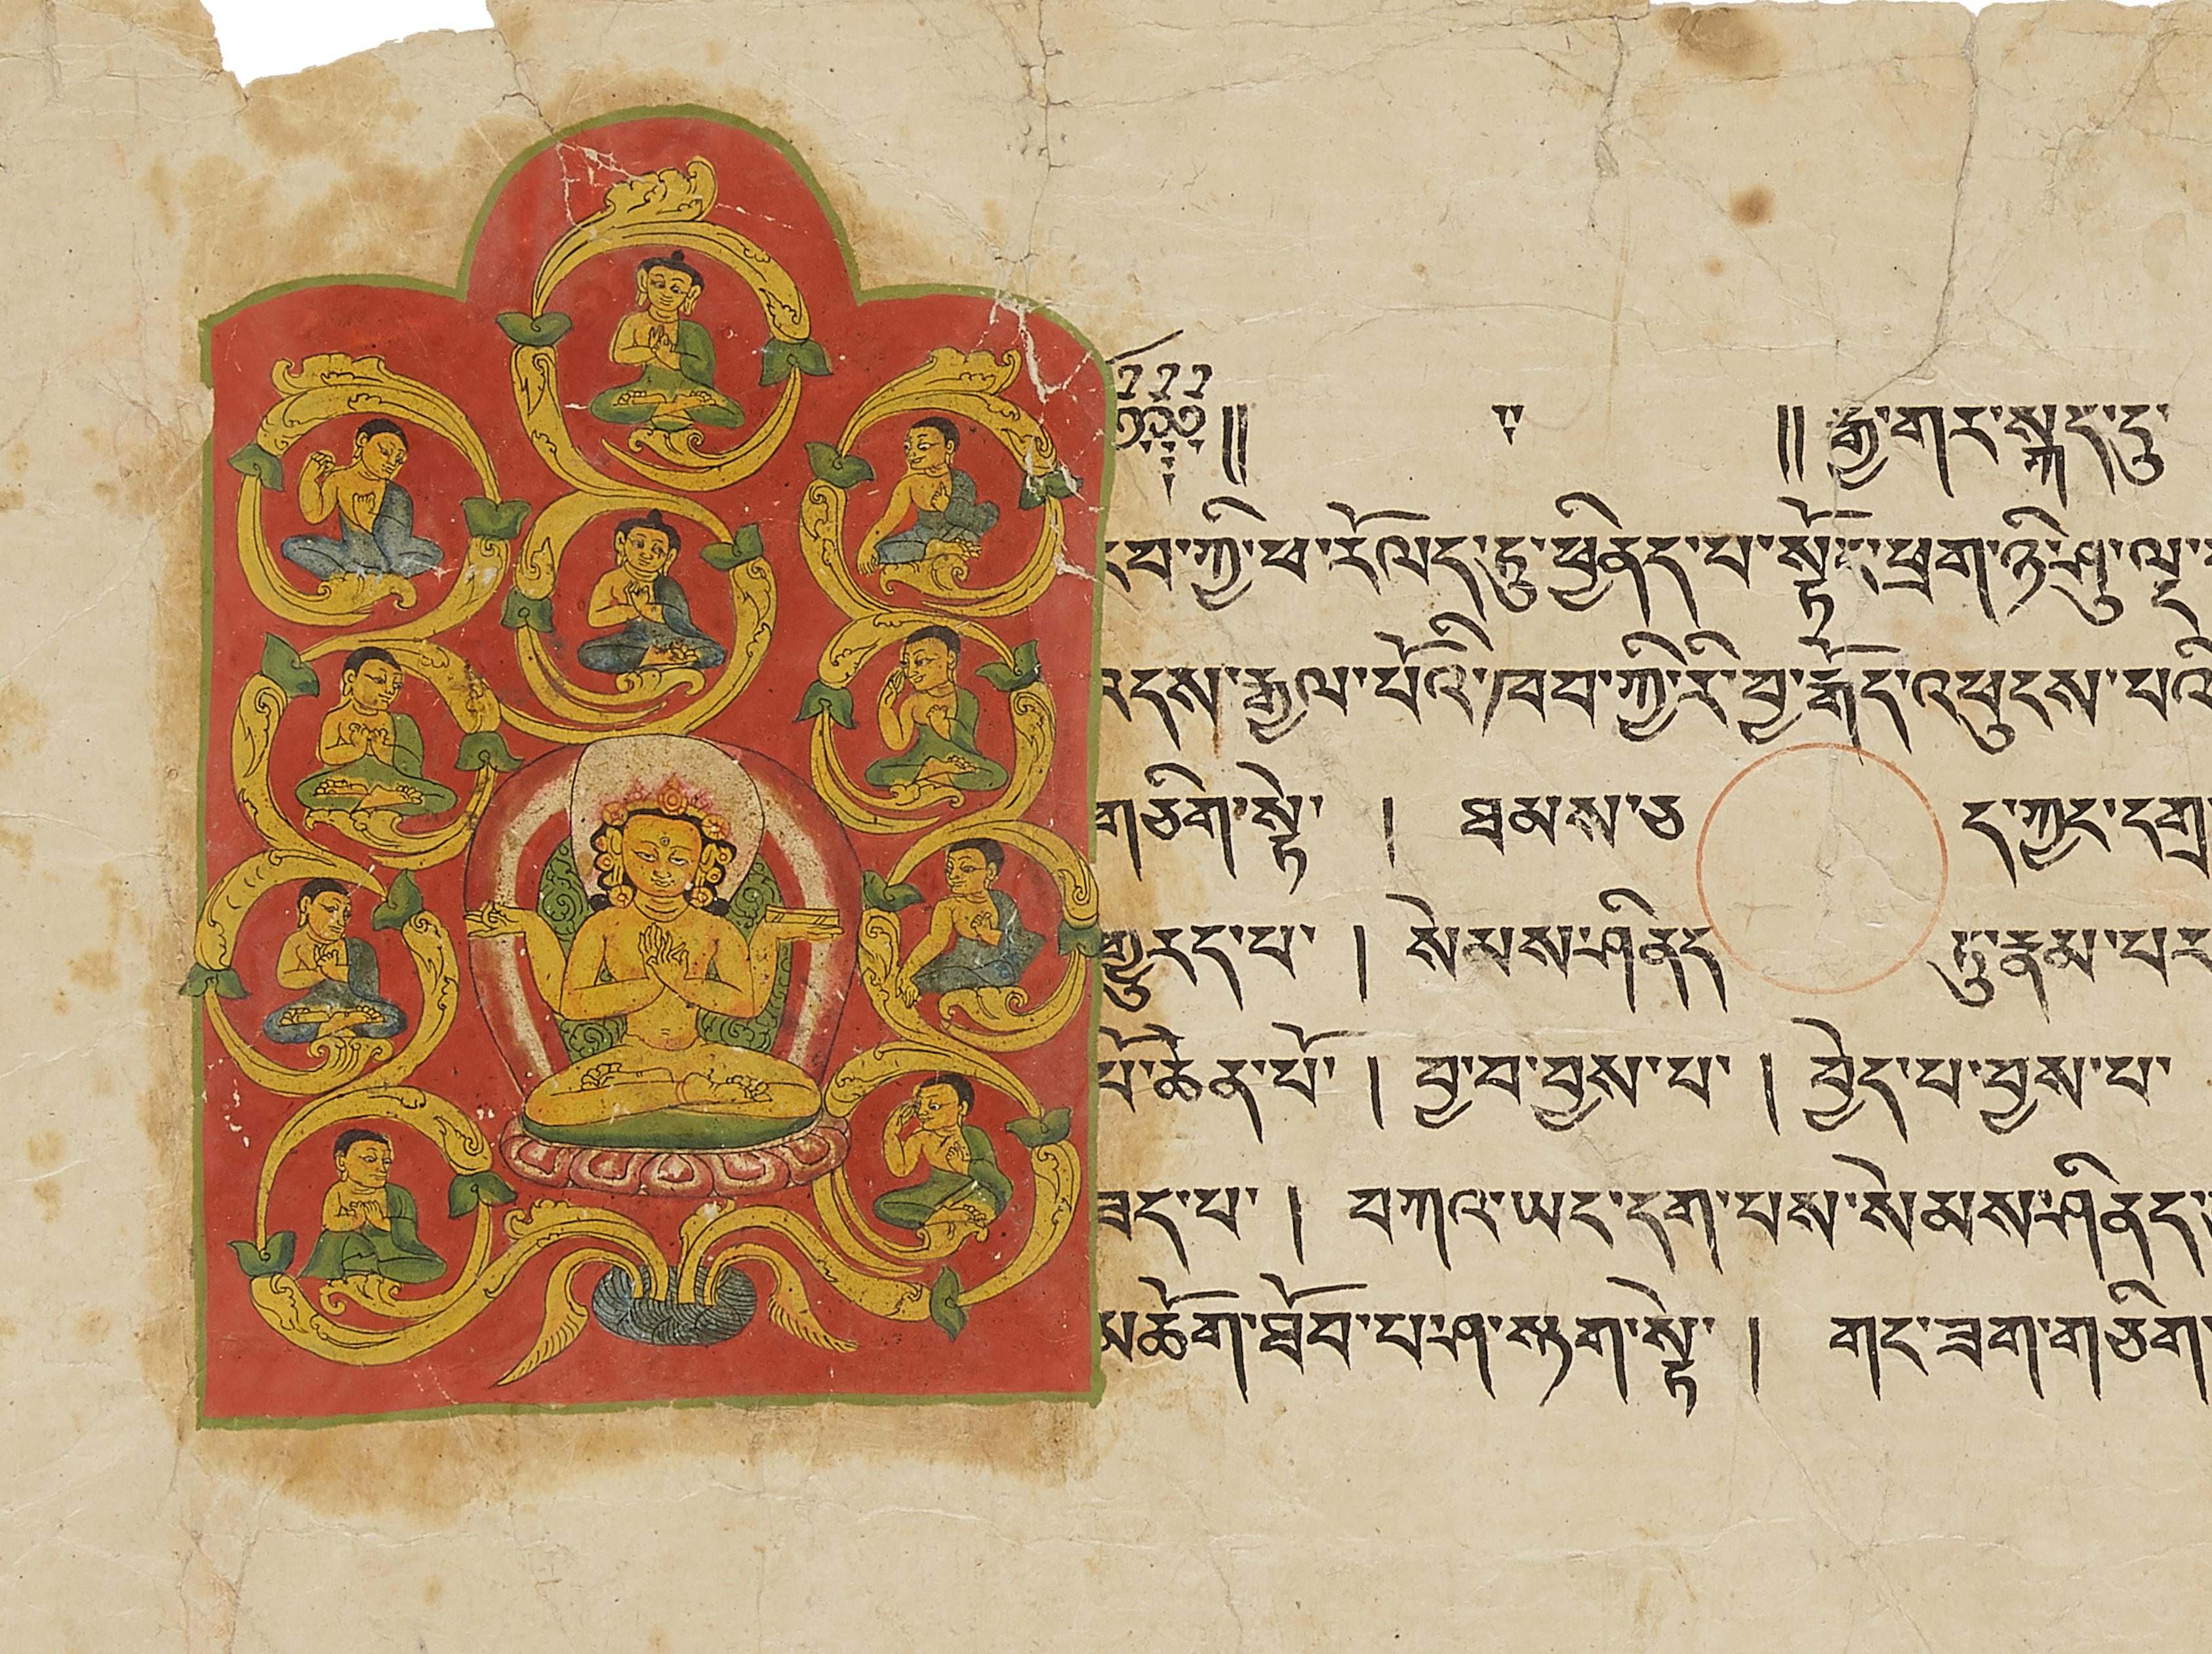 AN ILLUMINATED SUTRA PAGE  GUGE, WEST TIBET, 13TH/14TH CENTURY